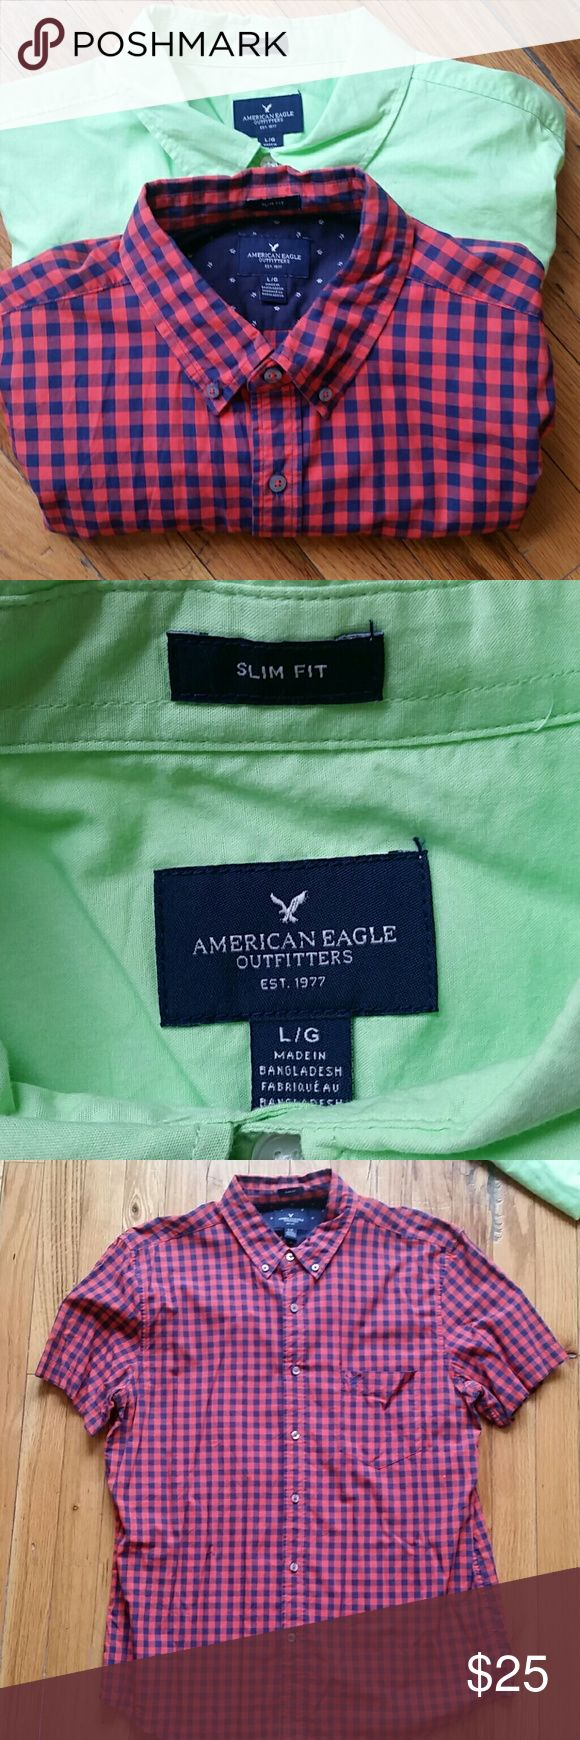 American Eagle Shirt Bundle Slim Fit and Size: Large. Front pocket. Both short sleeve.   Casual button downs that are great for spring/summer! Used but in good condition American Eagle Outfitters Shirts Casual Button Down Shirts